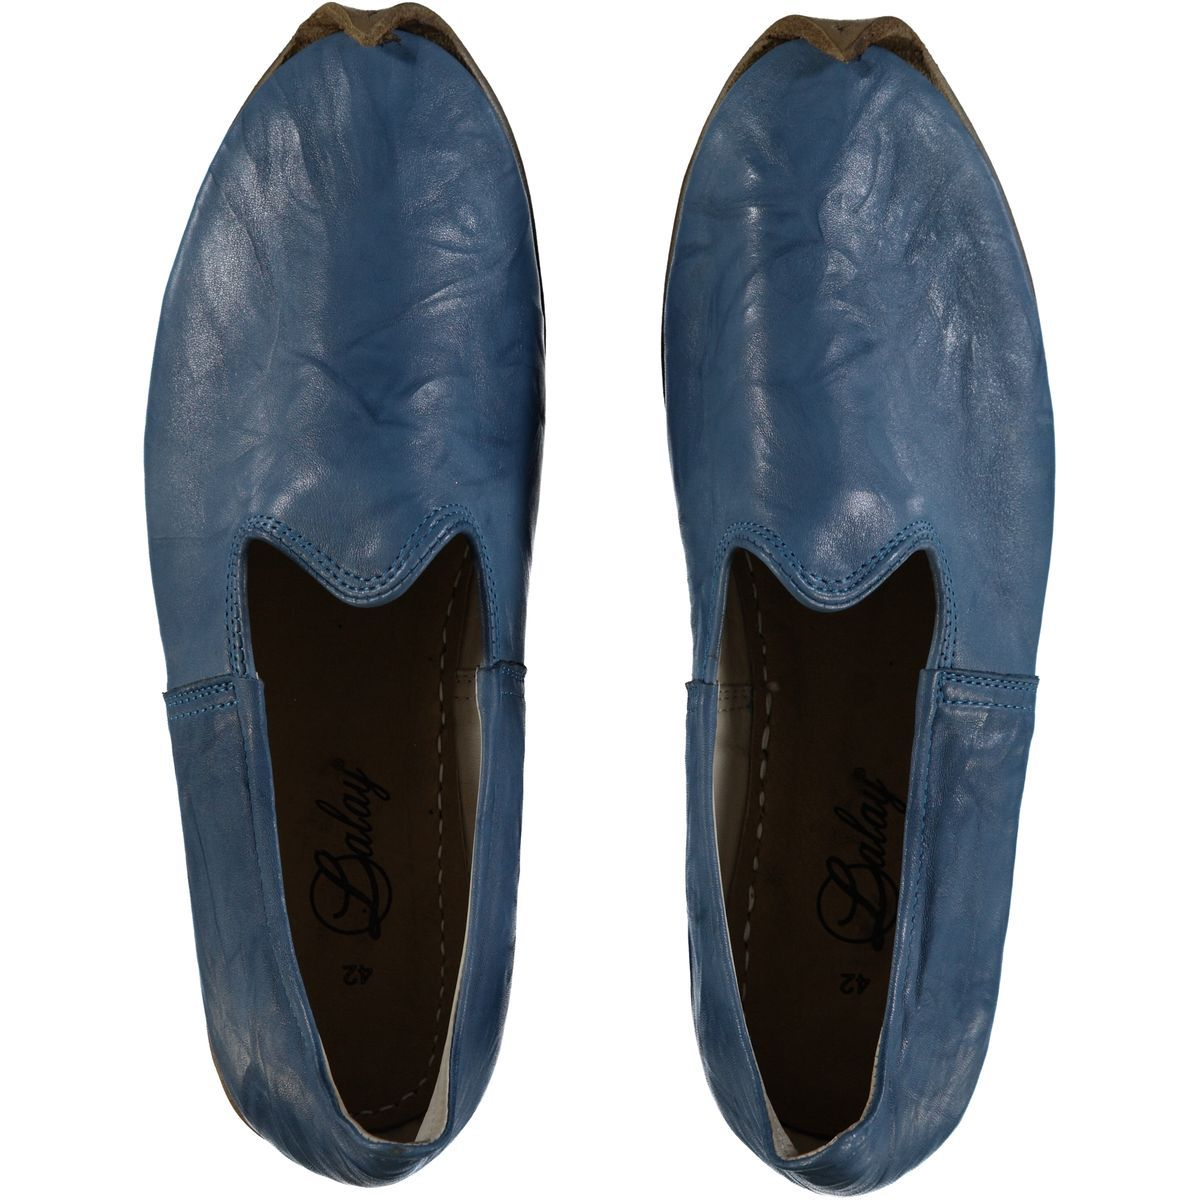 Shoe - Babouche / Leather / Handmade - Blue